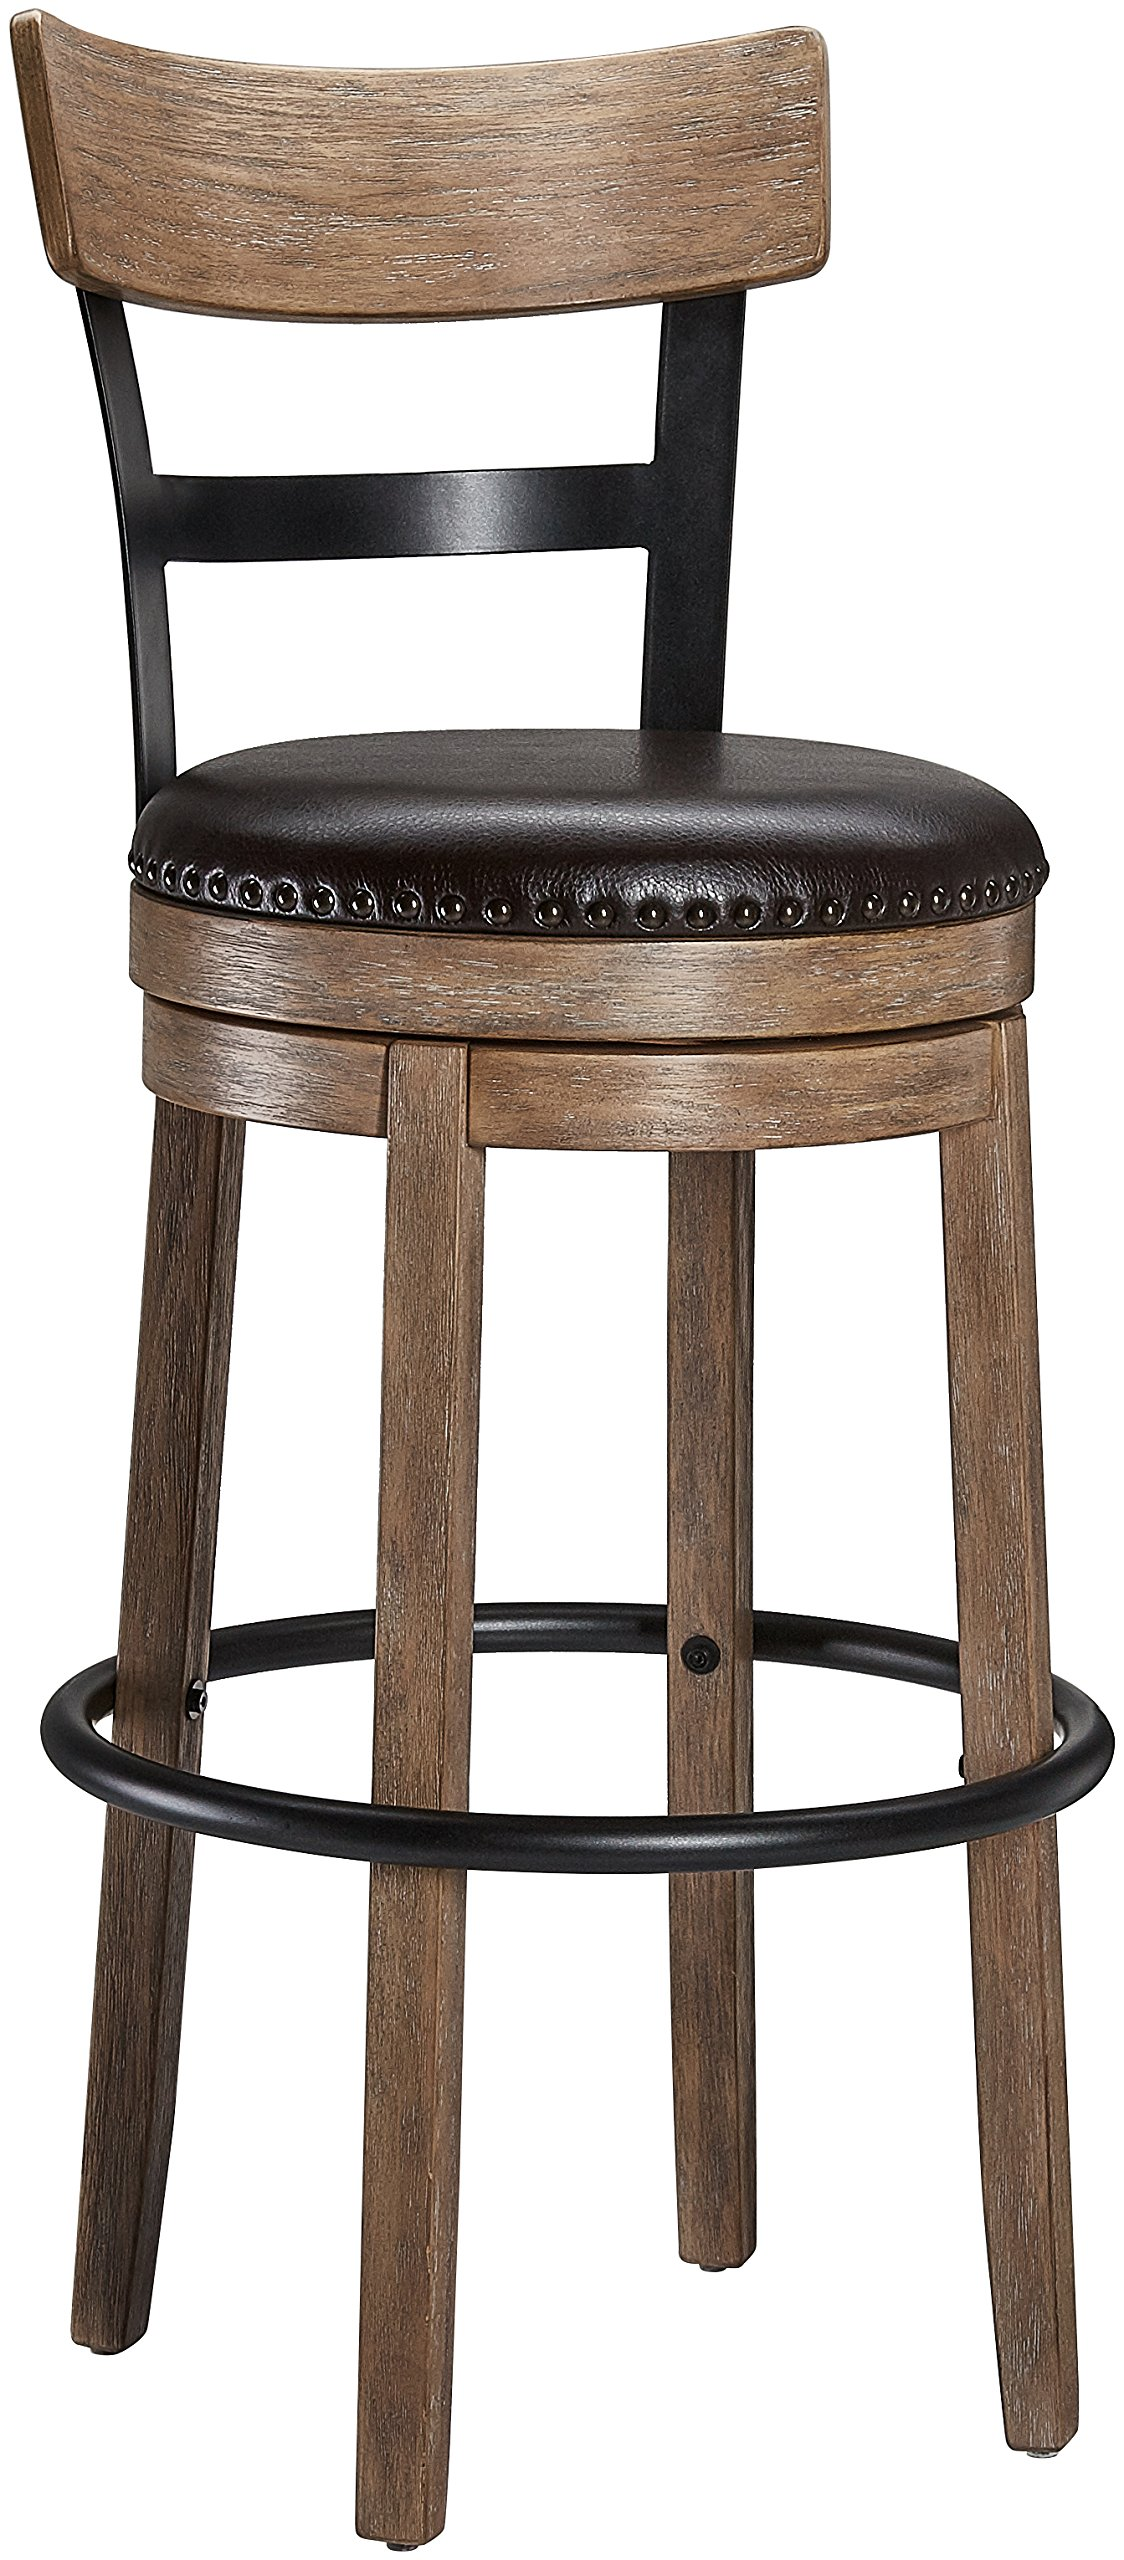 Huasen HSA-1001A Bar Stool, Light Brown by Huasen (Image #1)